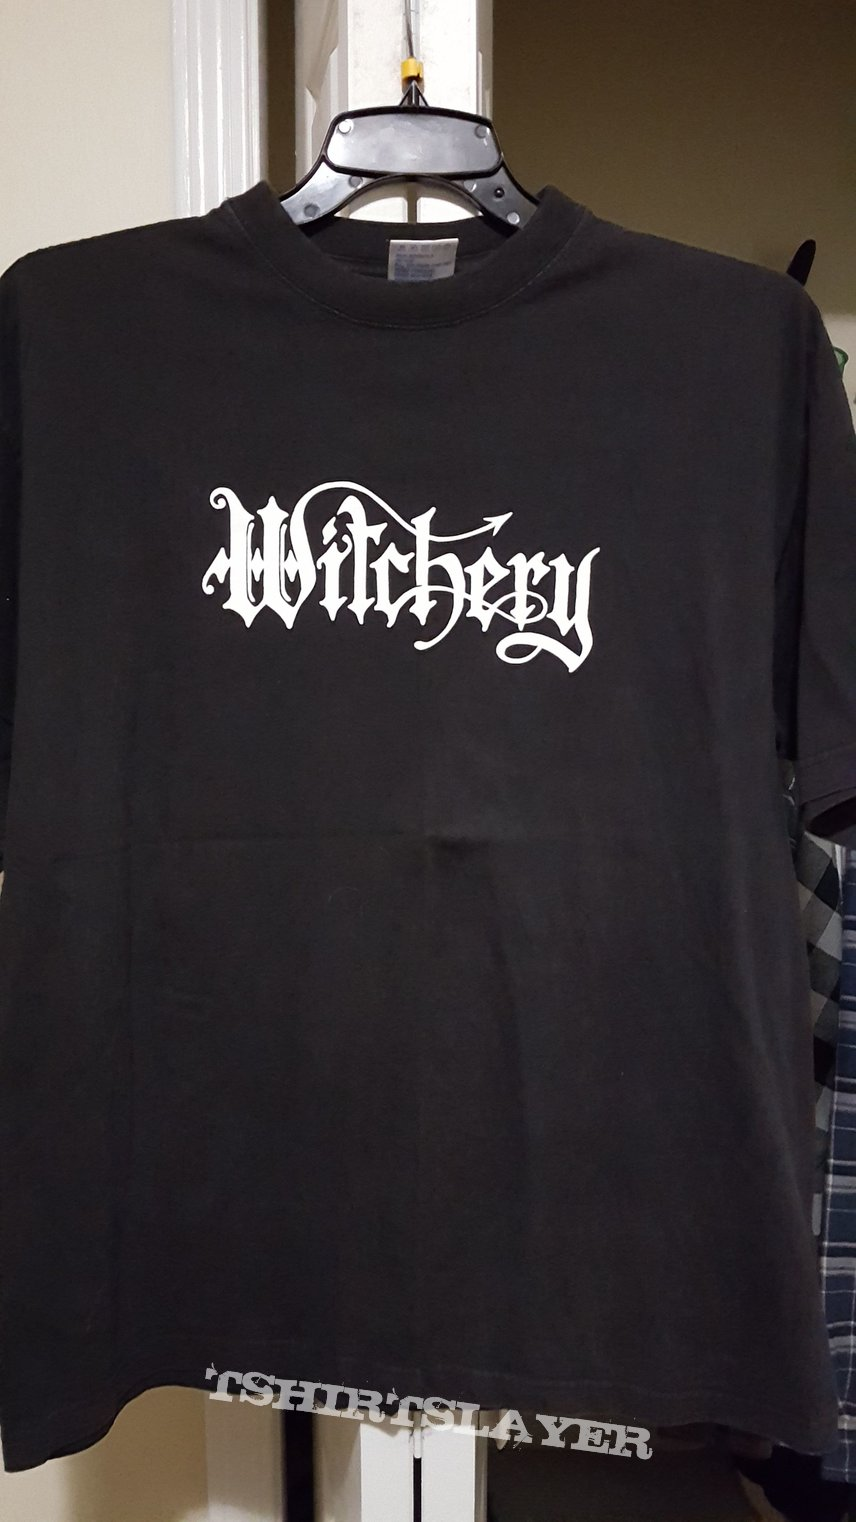 Witchery - Dead, Hot and Live in Europe 2000 tour shirt (XL)